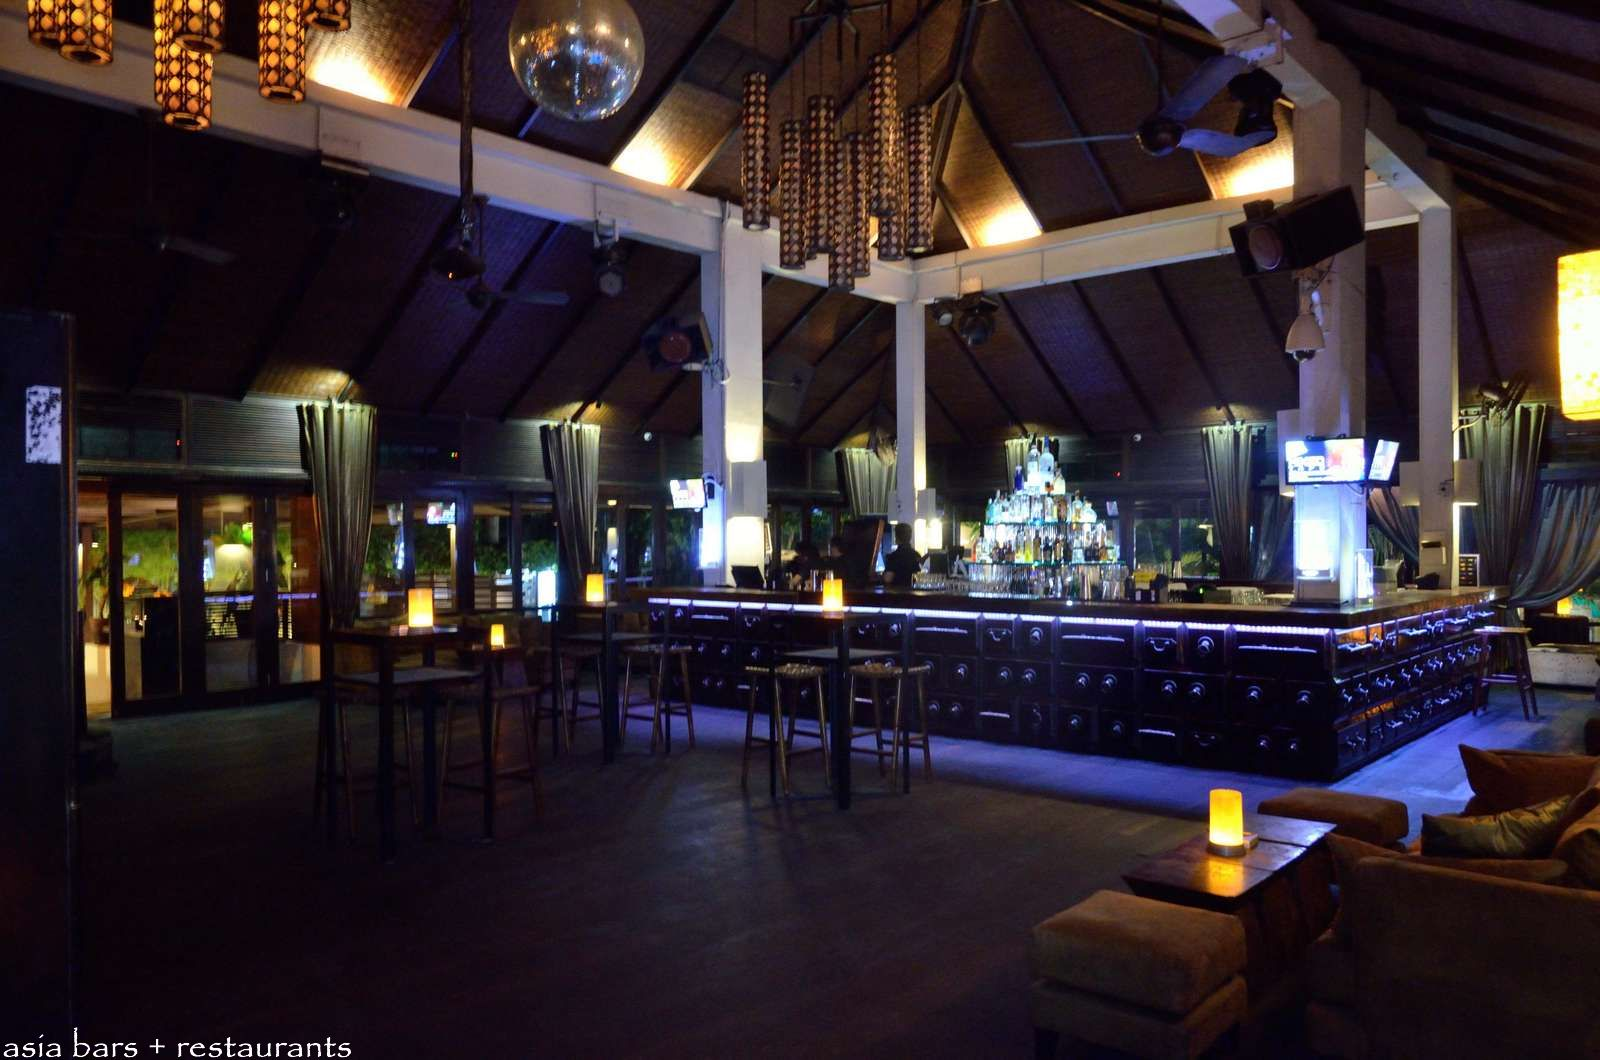 Huu Bar stellar nightclub in Bali Indonesia Asia Bars  : huu bar bali 9 from www.asia-bars.com size 1600 x 1060 jpeg 196kB